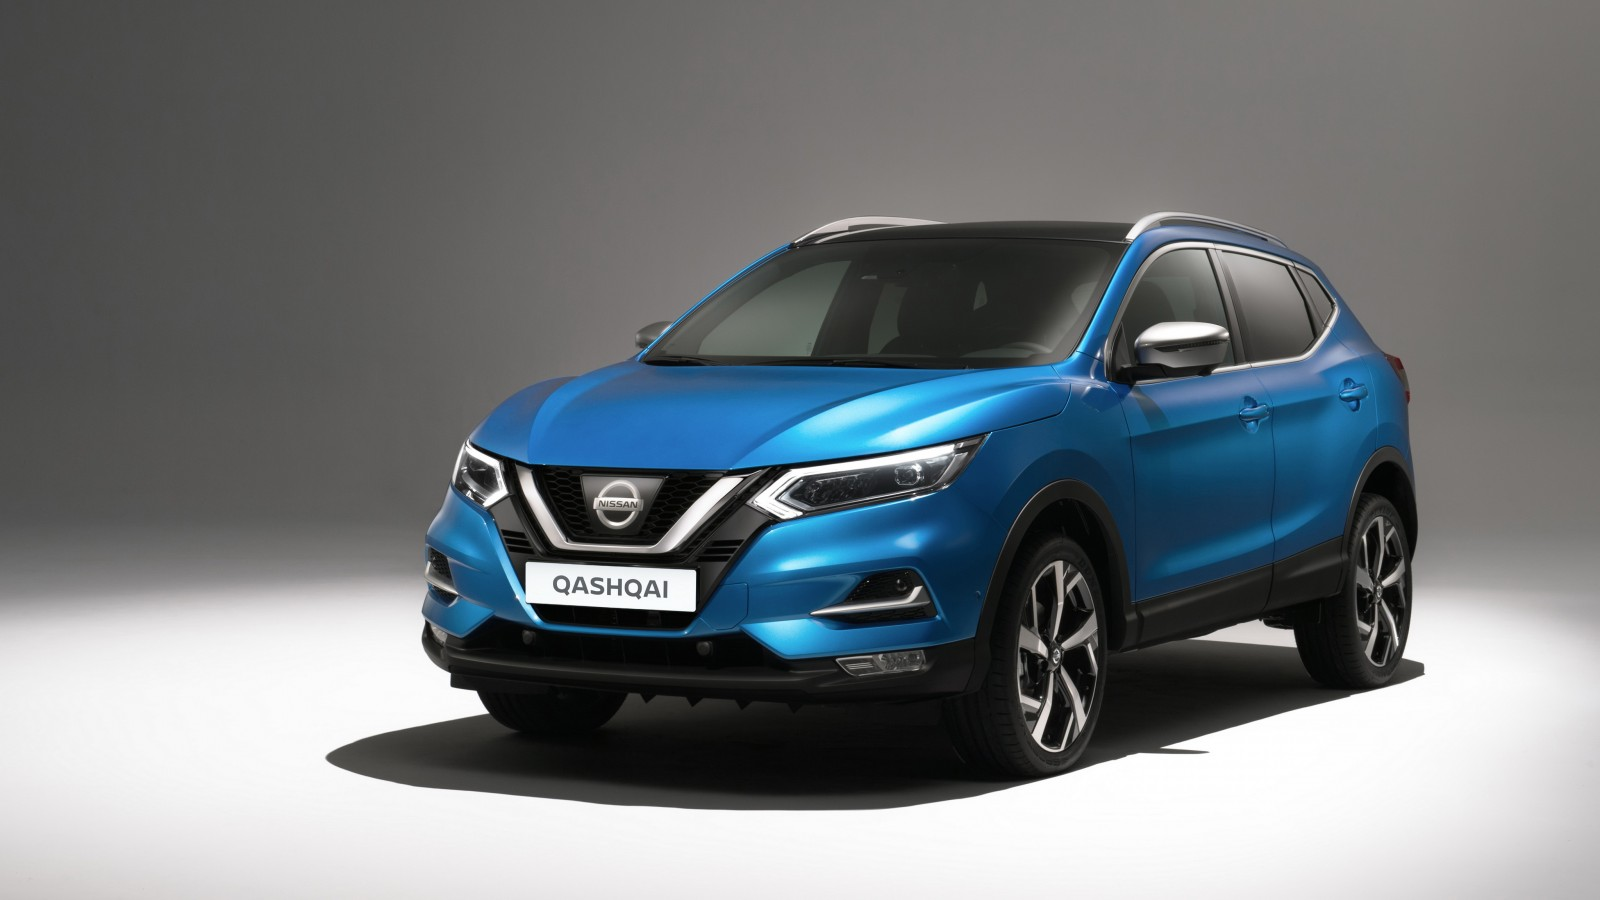 2018 nissan qashqai suv 4k wallpaper hd car wallpapers. Black Bedroom Furniture Sets. Home Design Ideas